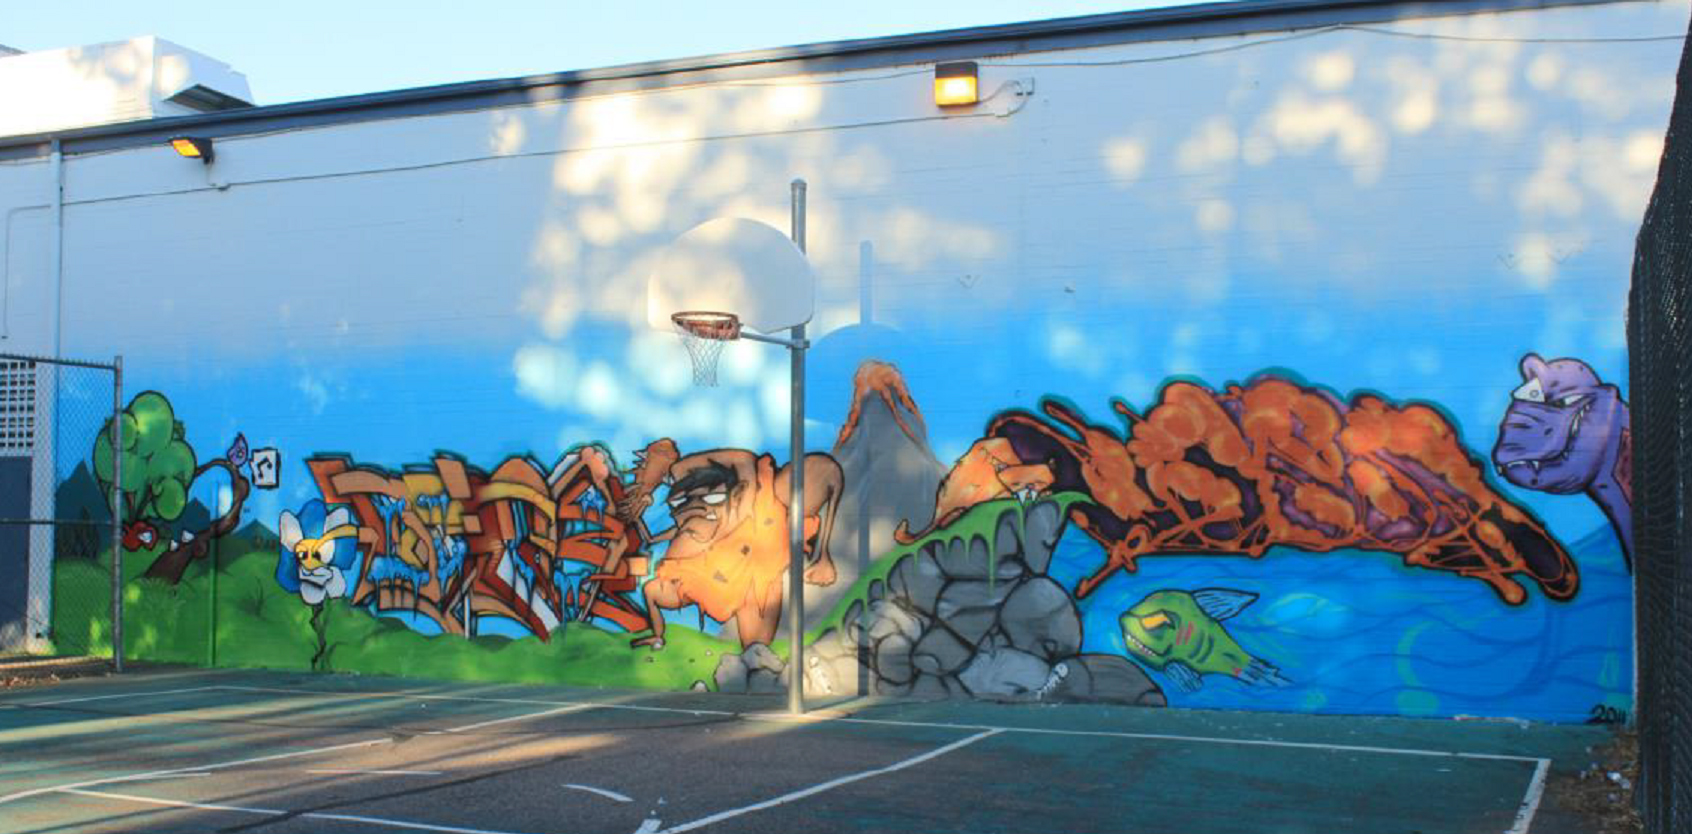 Go to the YNIG Art Education Mural Program page